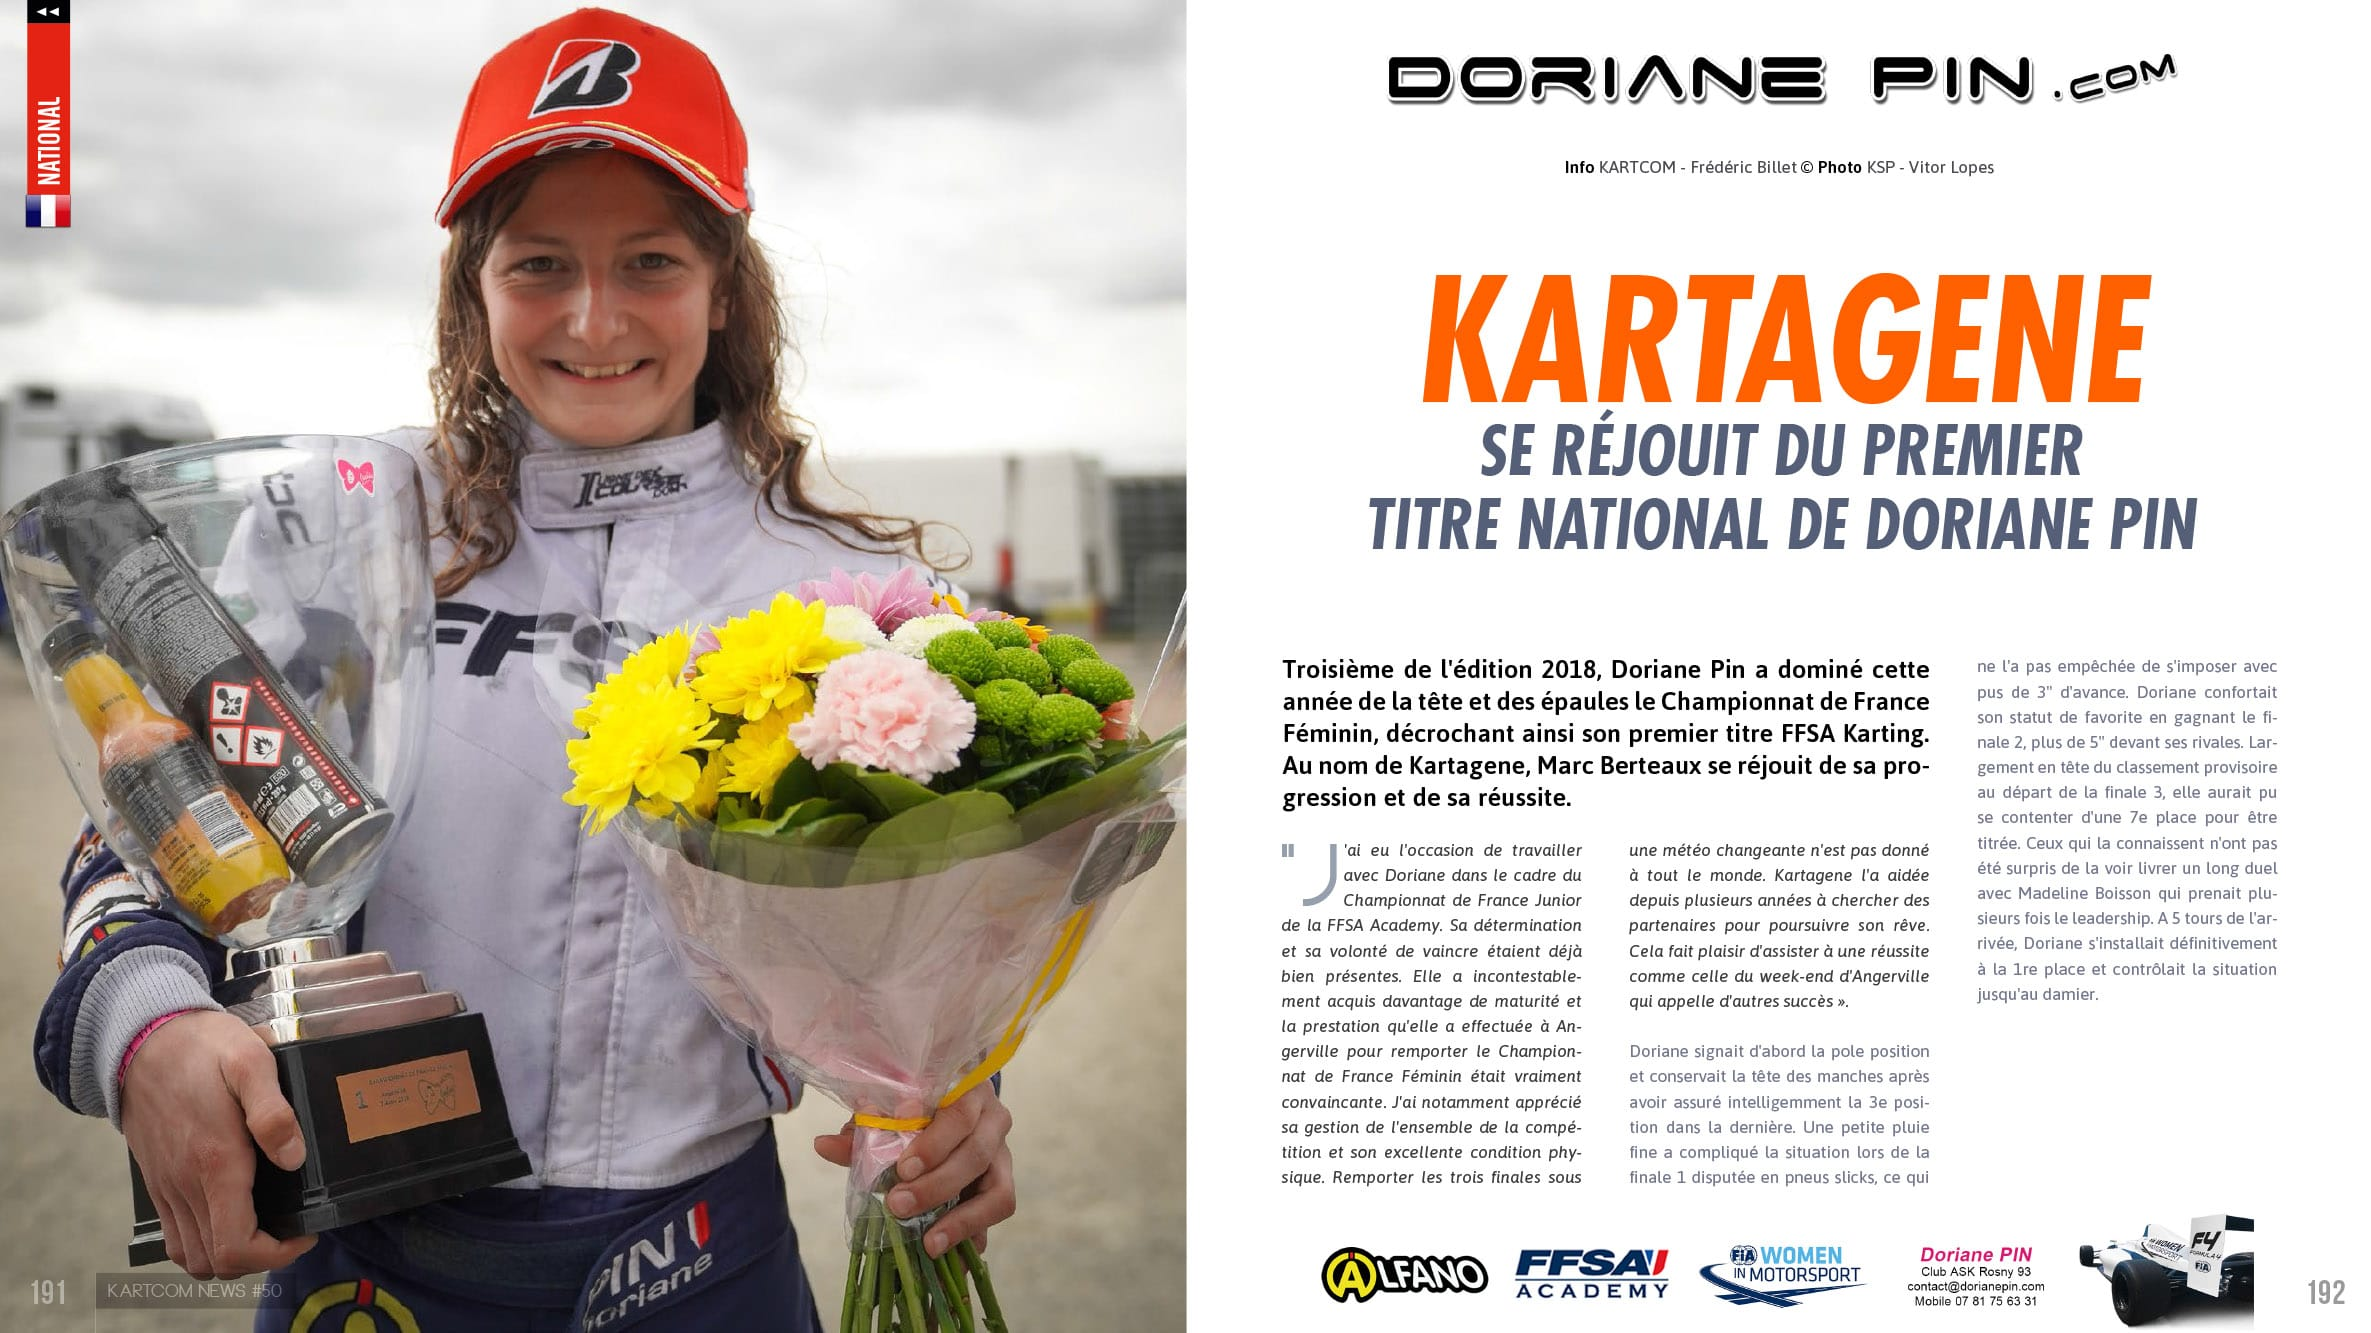 Kartagene félicite Doriane Pin pour son premier titre national en Karting 2019 , article avril 2019